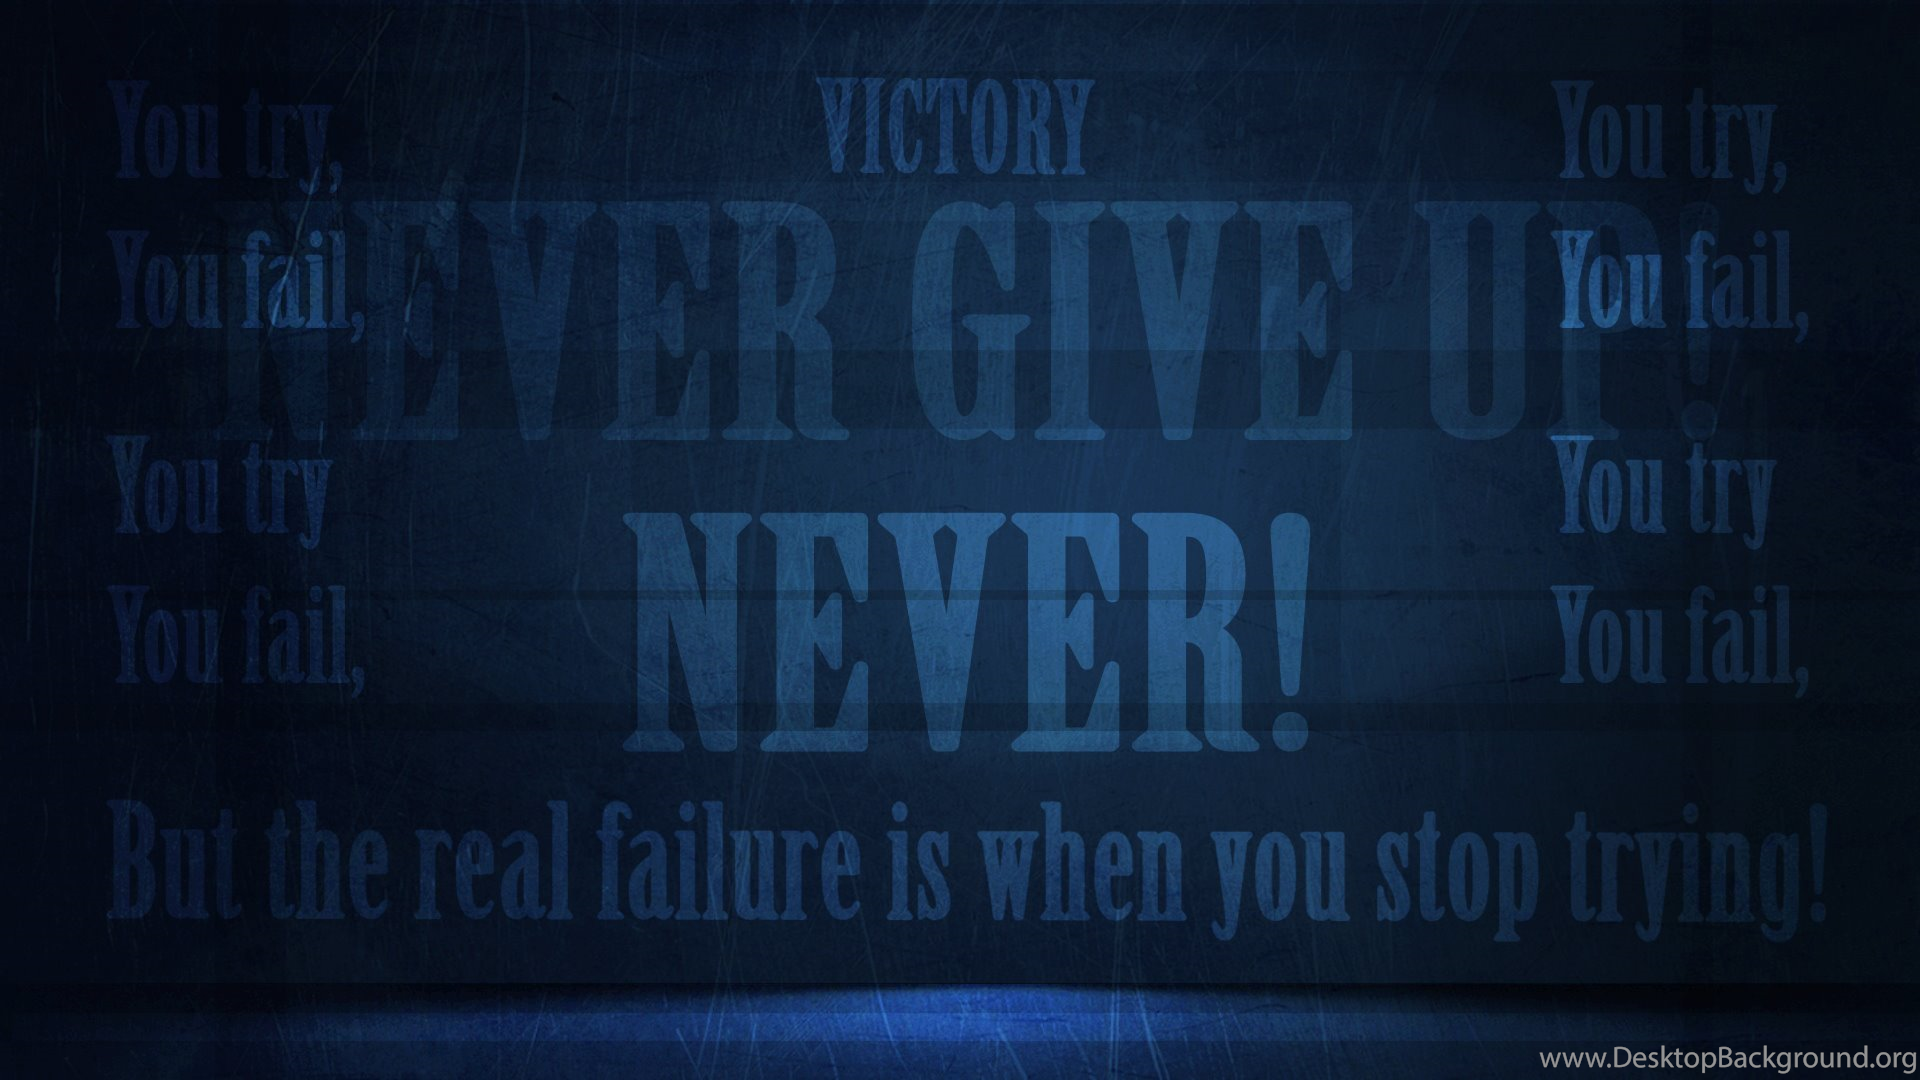 Never give up motivation wallpapers walldevil best free - Never give up wallpapers desktop hd ...